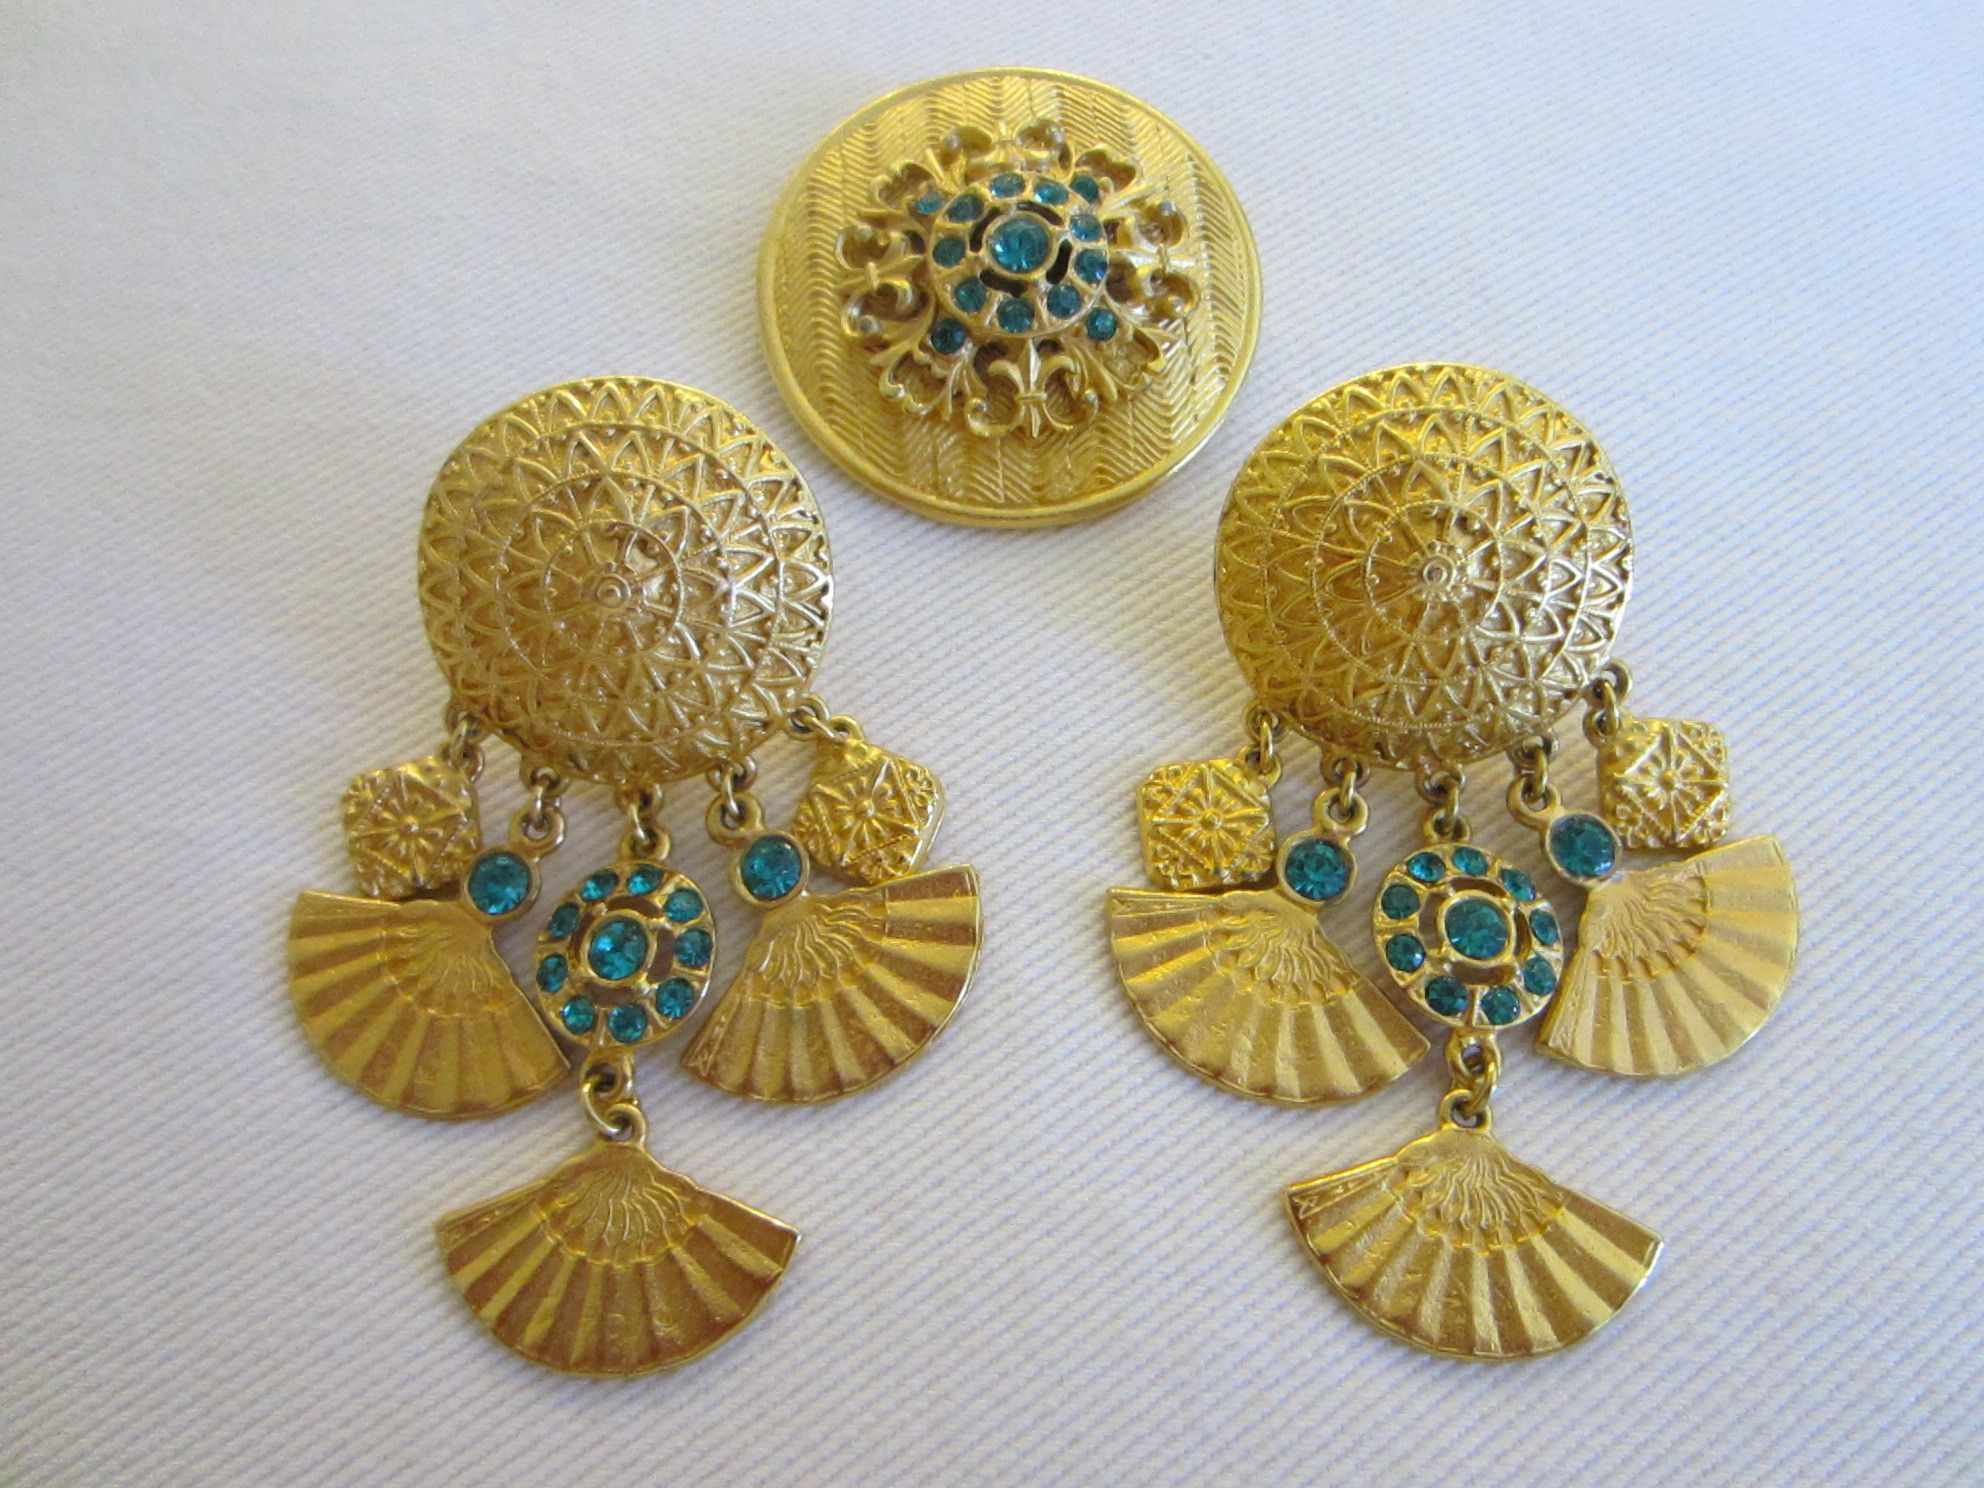 Brass Brooch Earrings Collection Eastern Inspire Charm Drops Blue Crystal